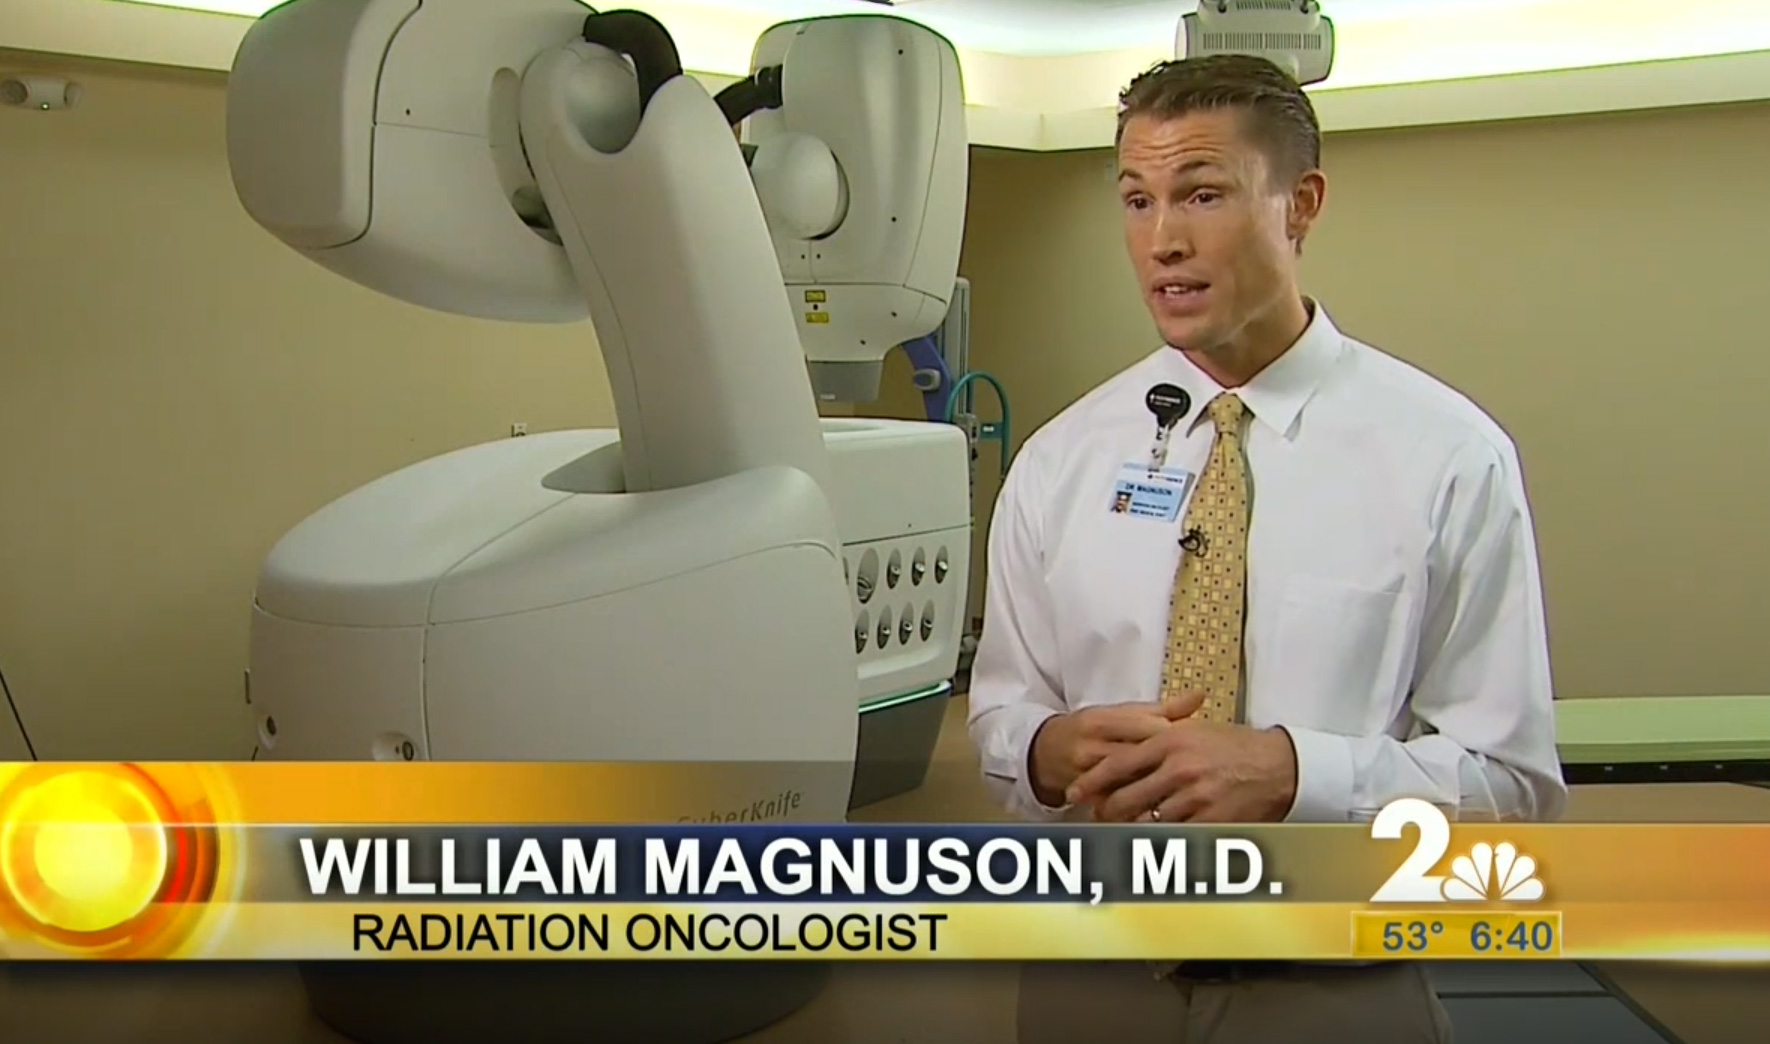 WIlliam Magnuson MD Discusses accuracy of Cyberknife radiation beams.